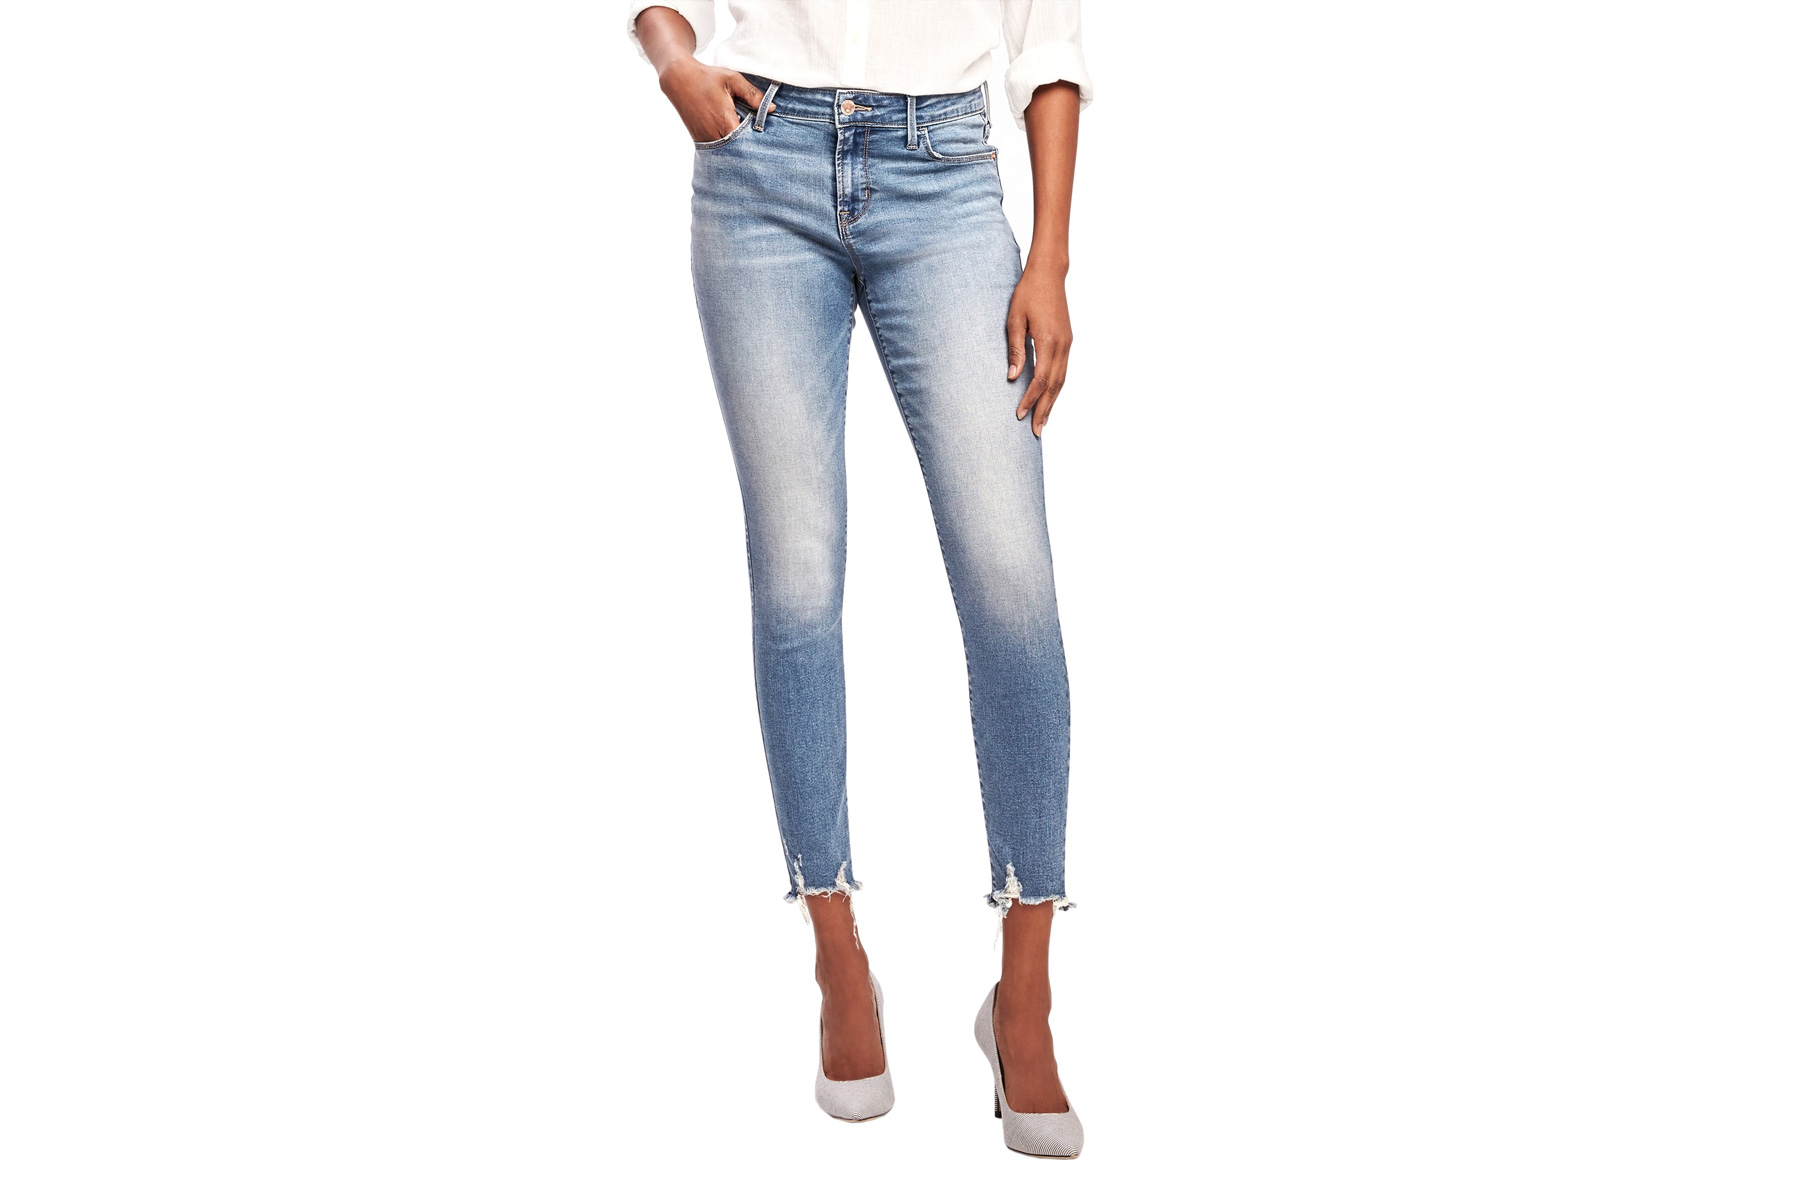 496239fc5d3 6 Trendy Pairs of Jeans Under $35 From Gap and Old Navy's Big Sale